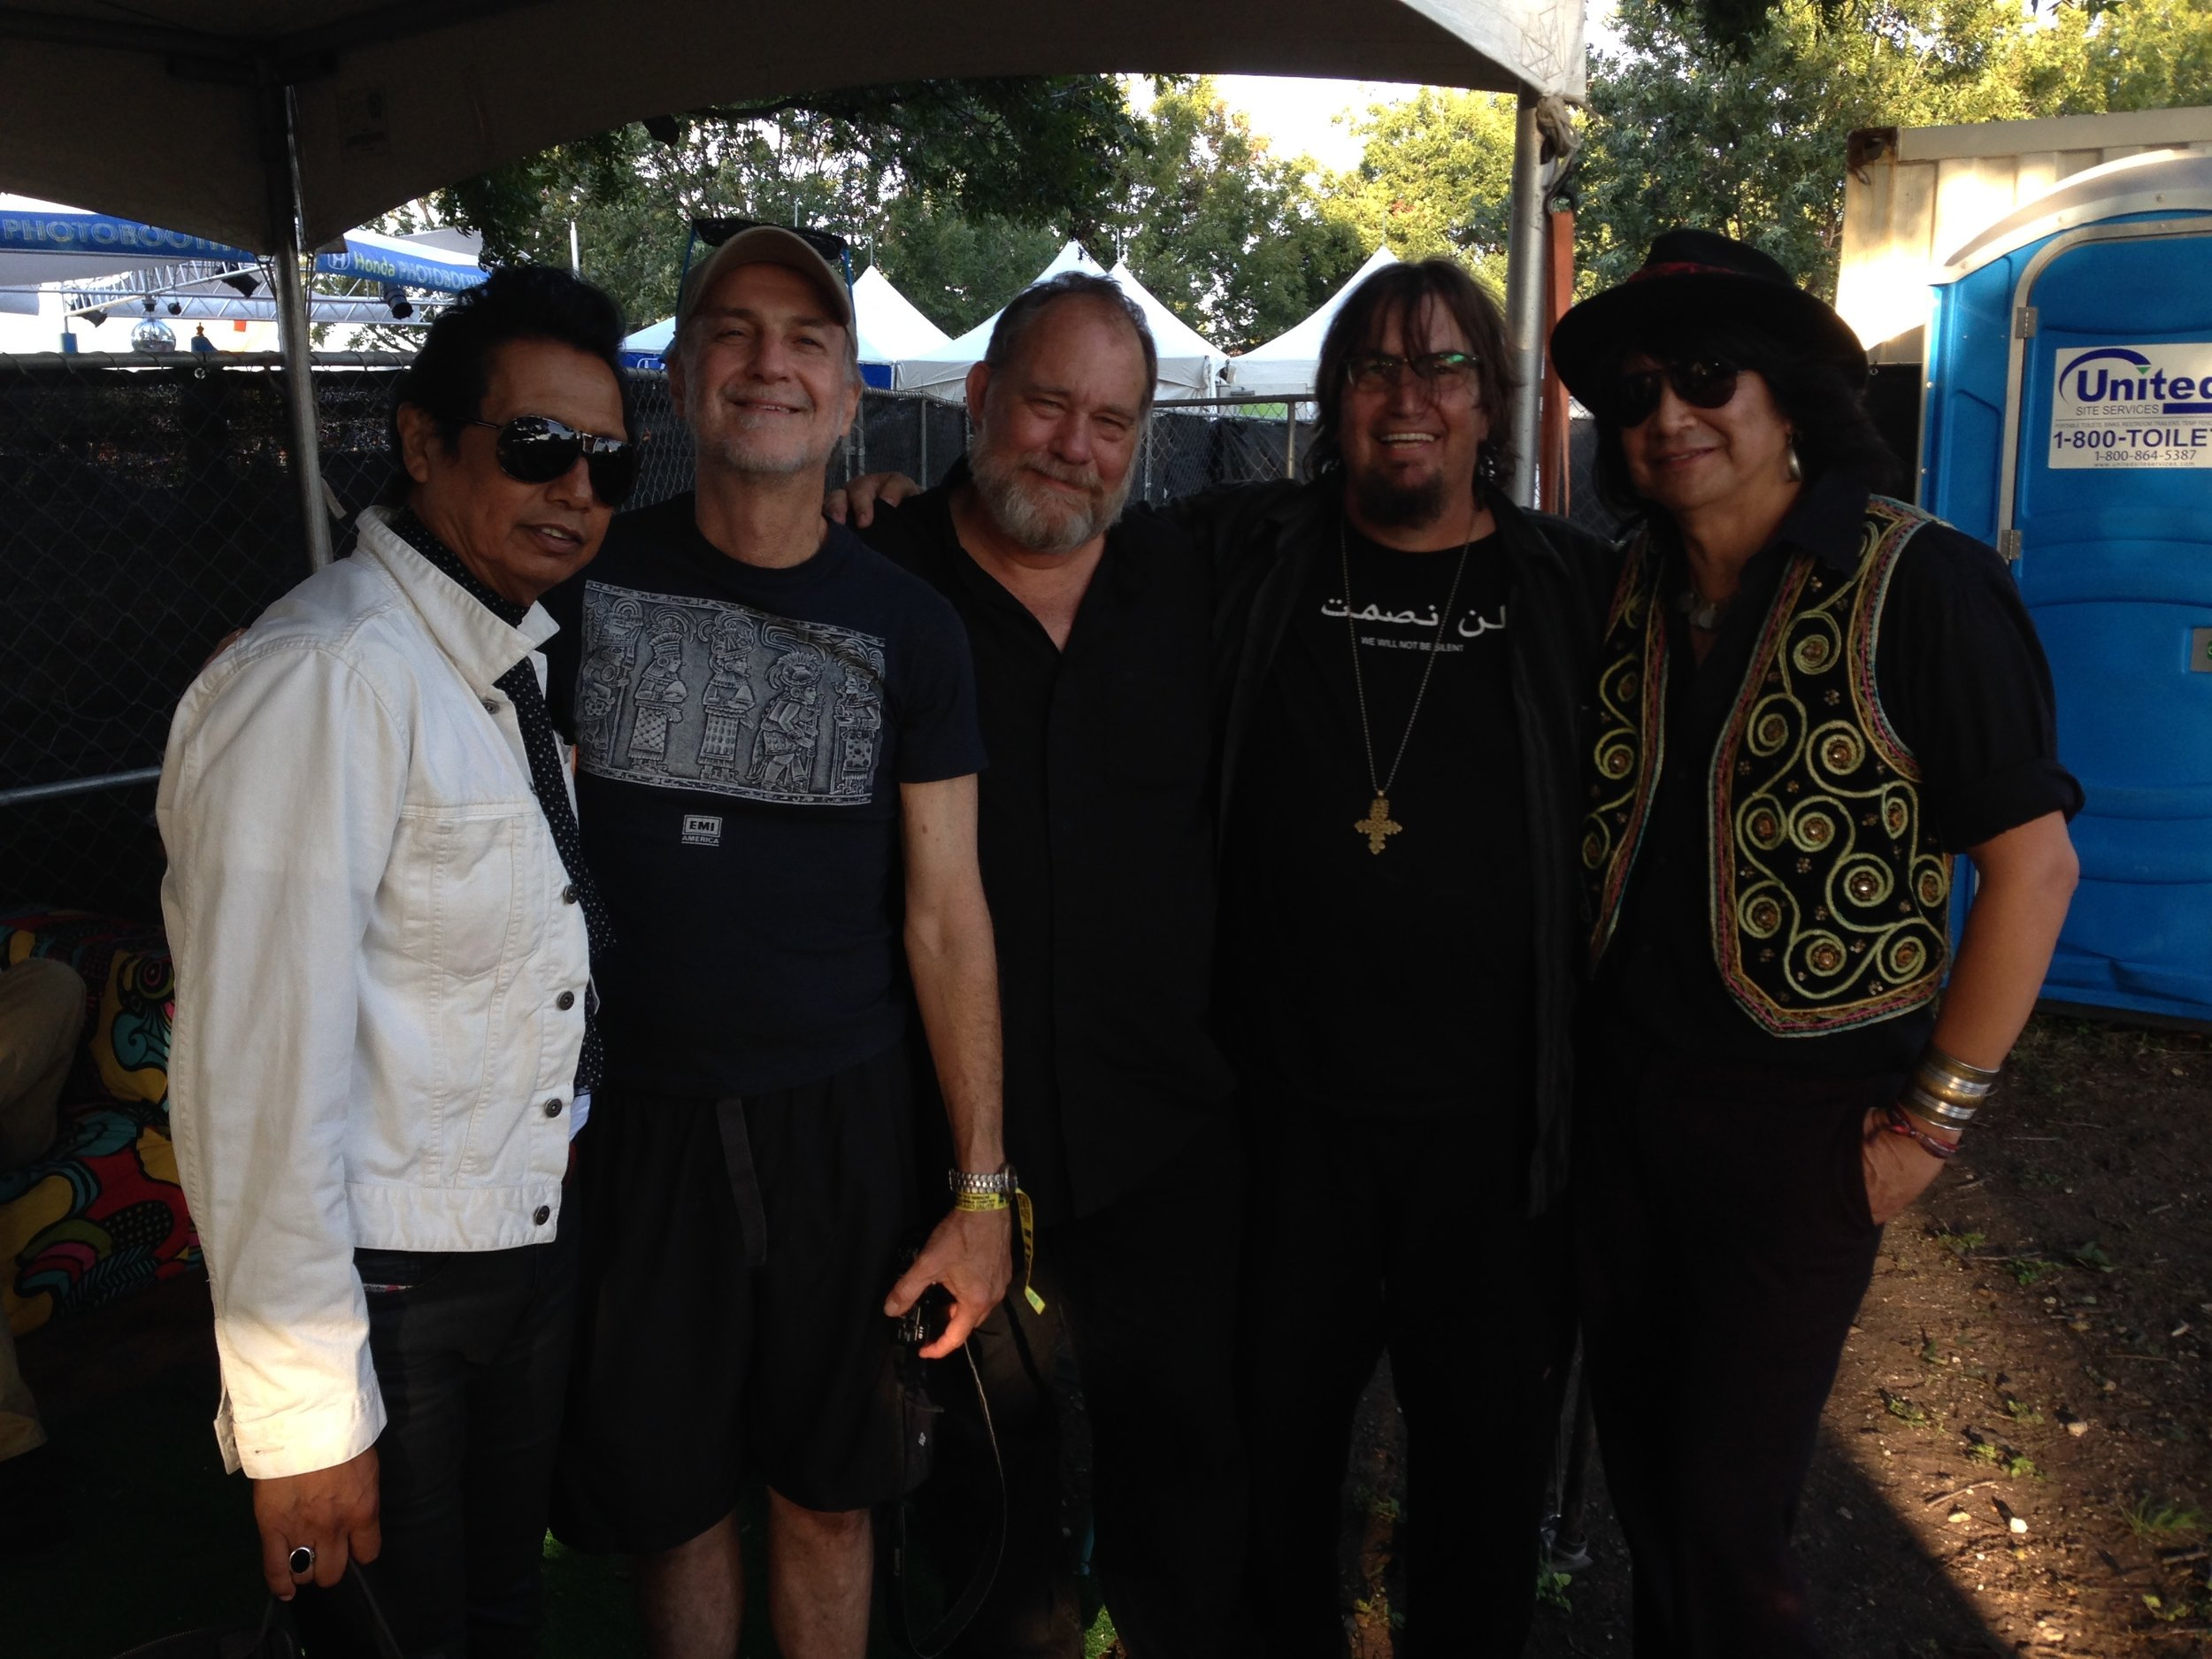 True Believers backstage at ACL Music Festival 2013.